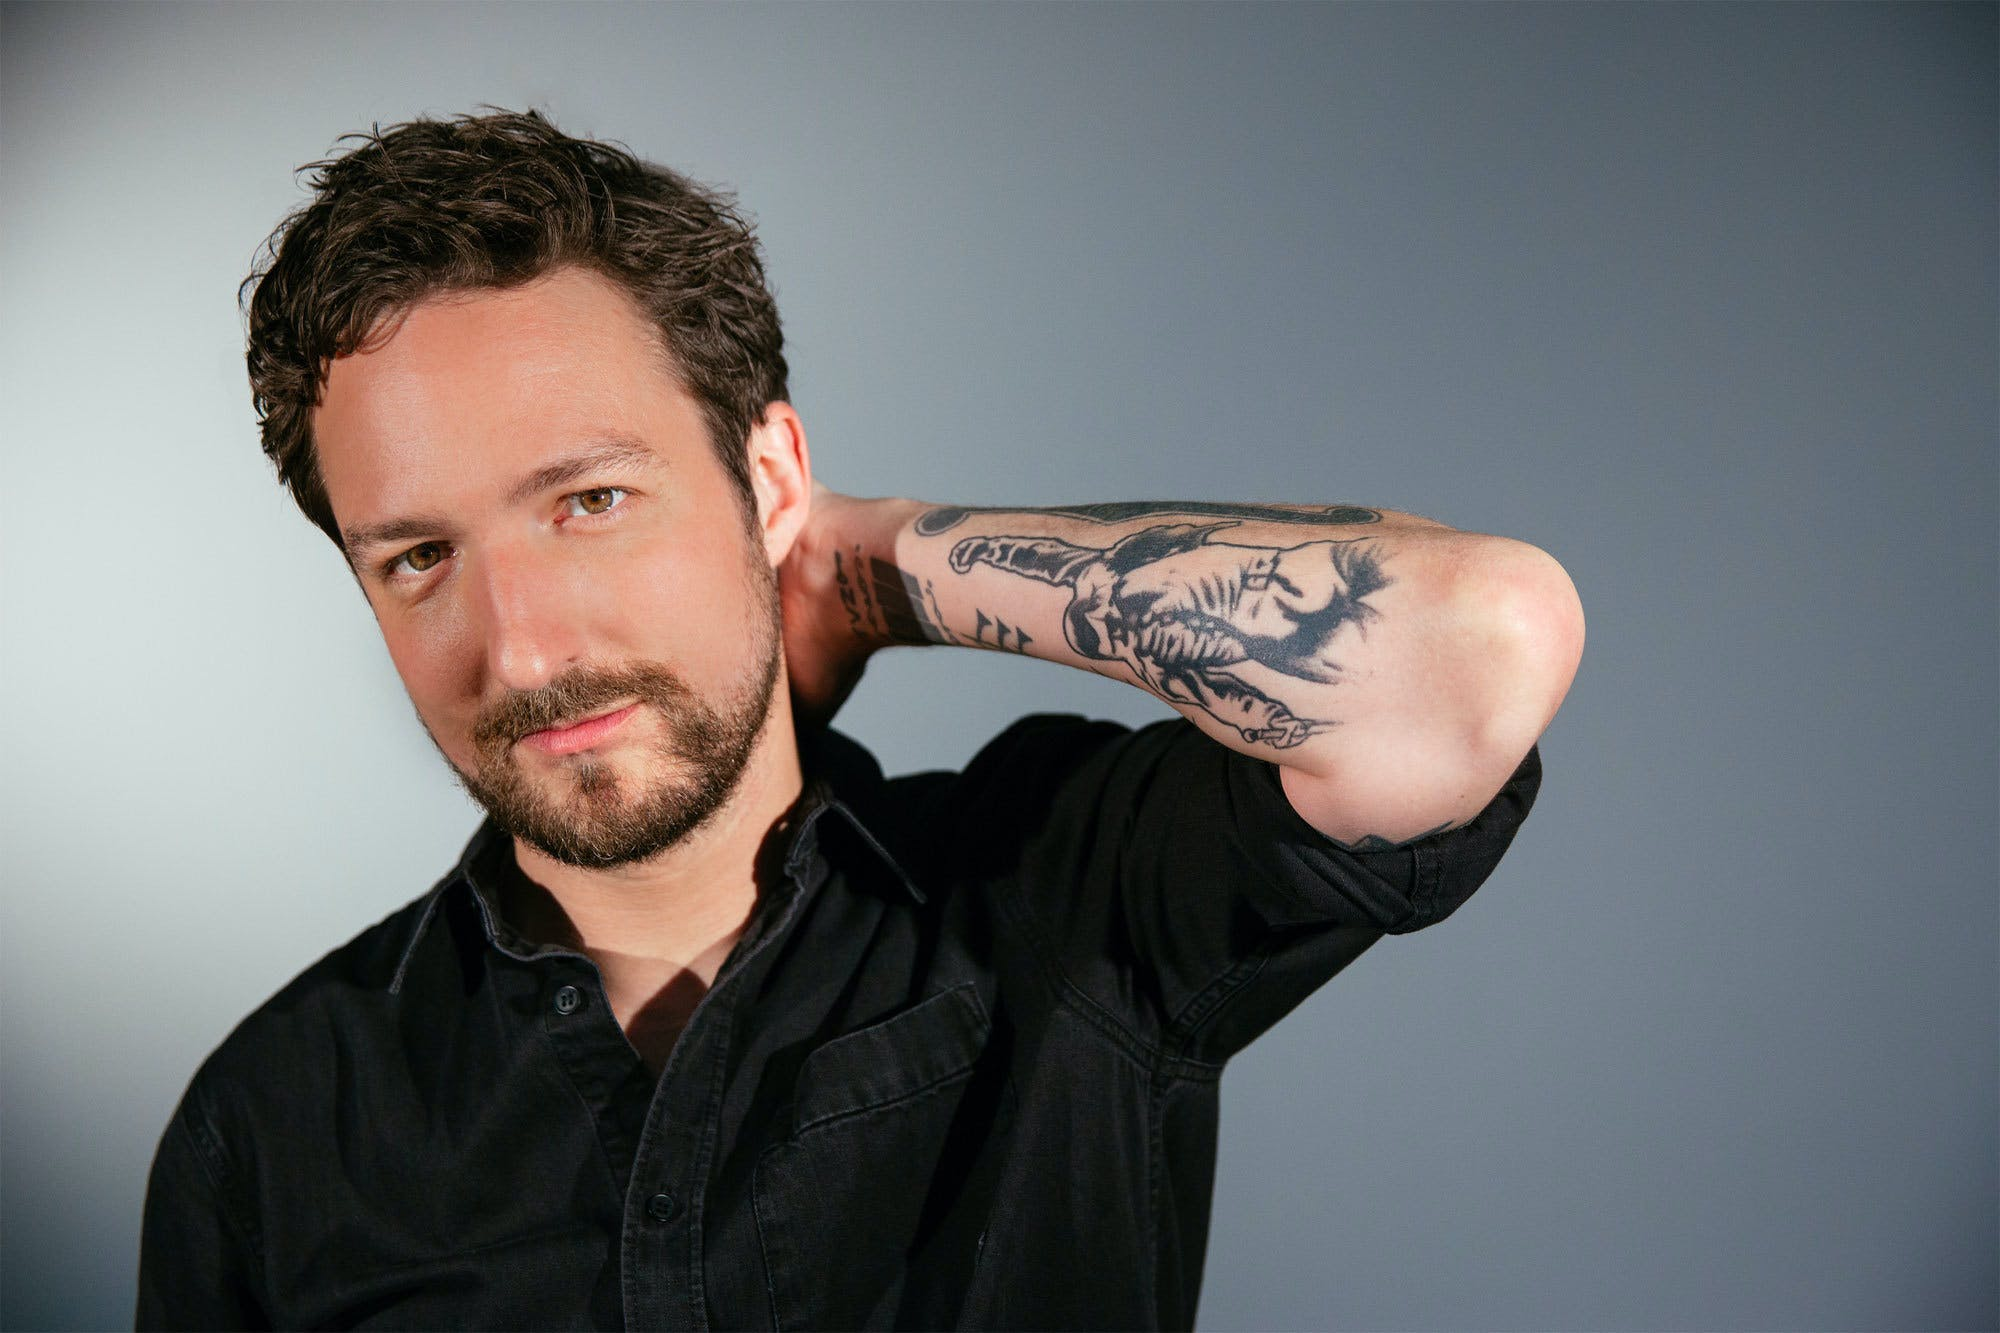 Frank Turner: The 10 Songs That Changed My Life